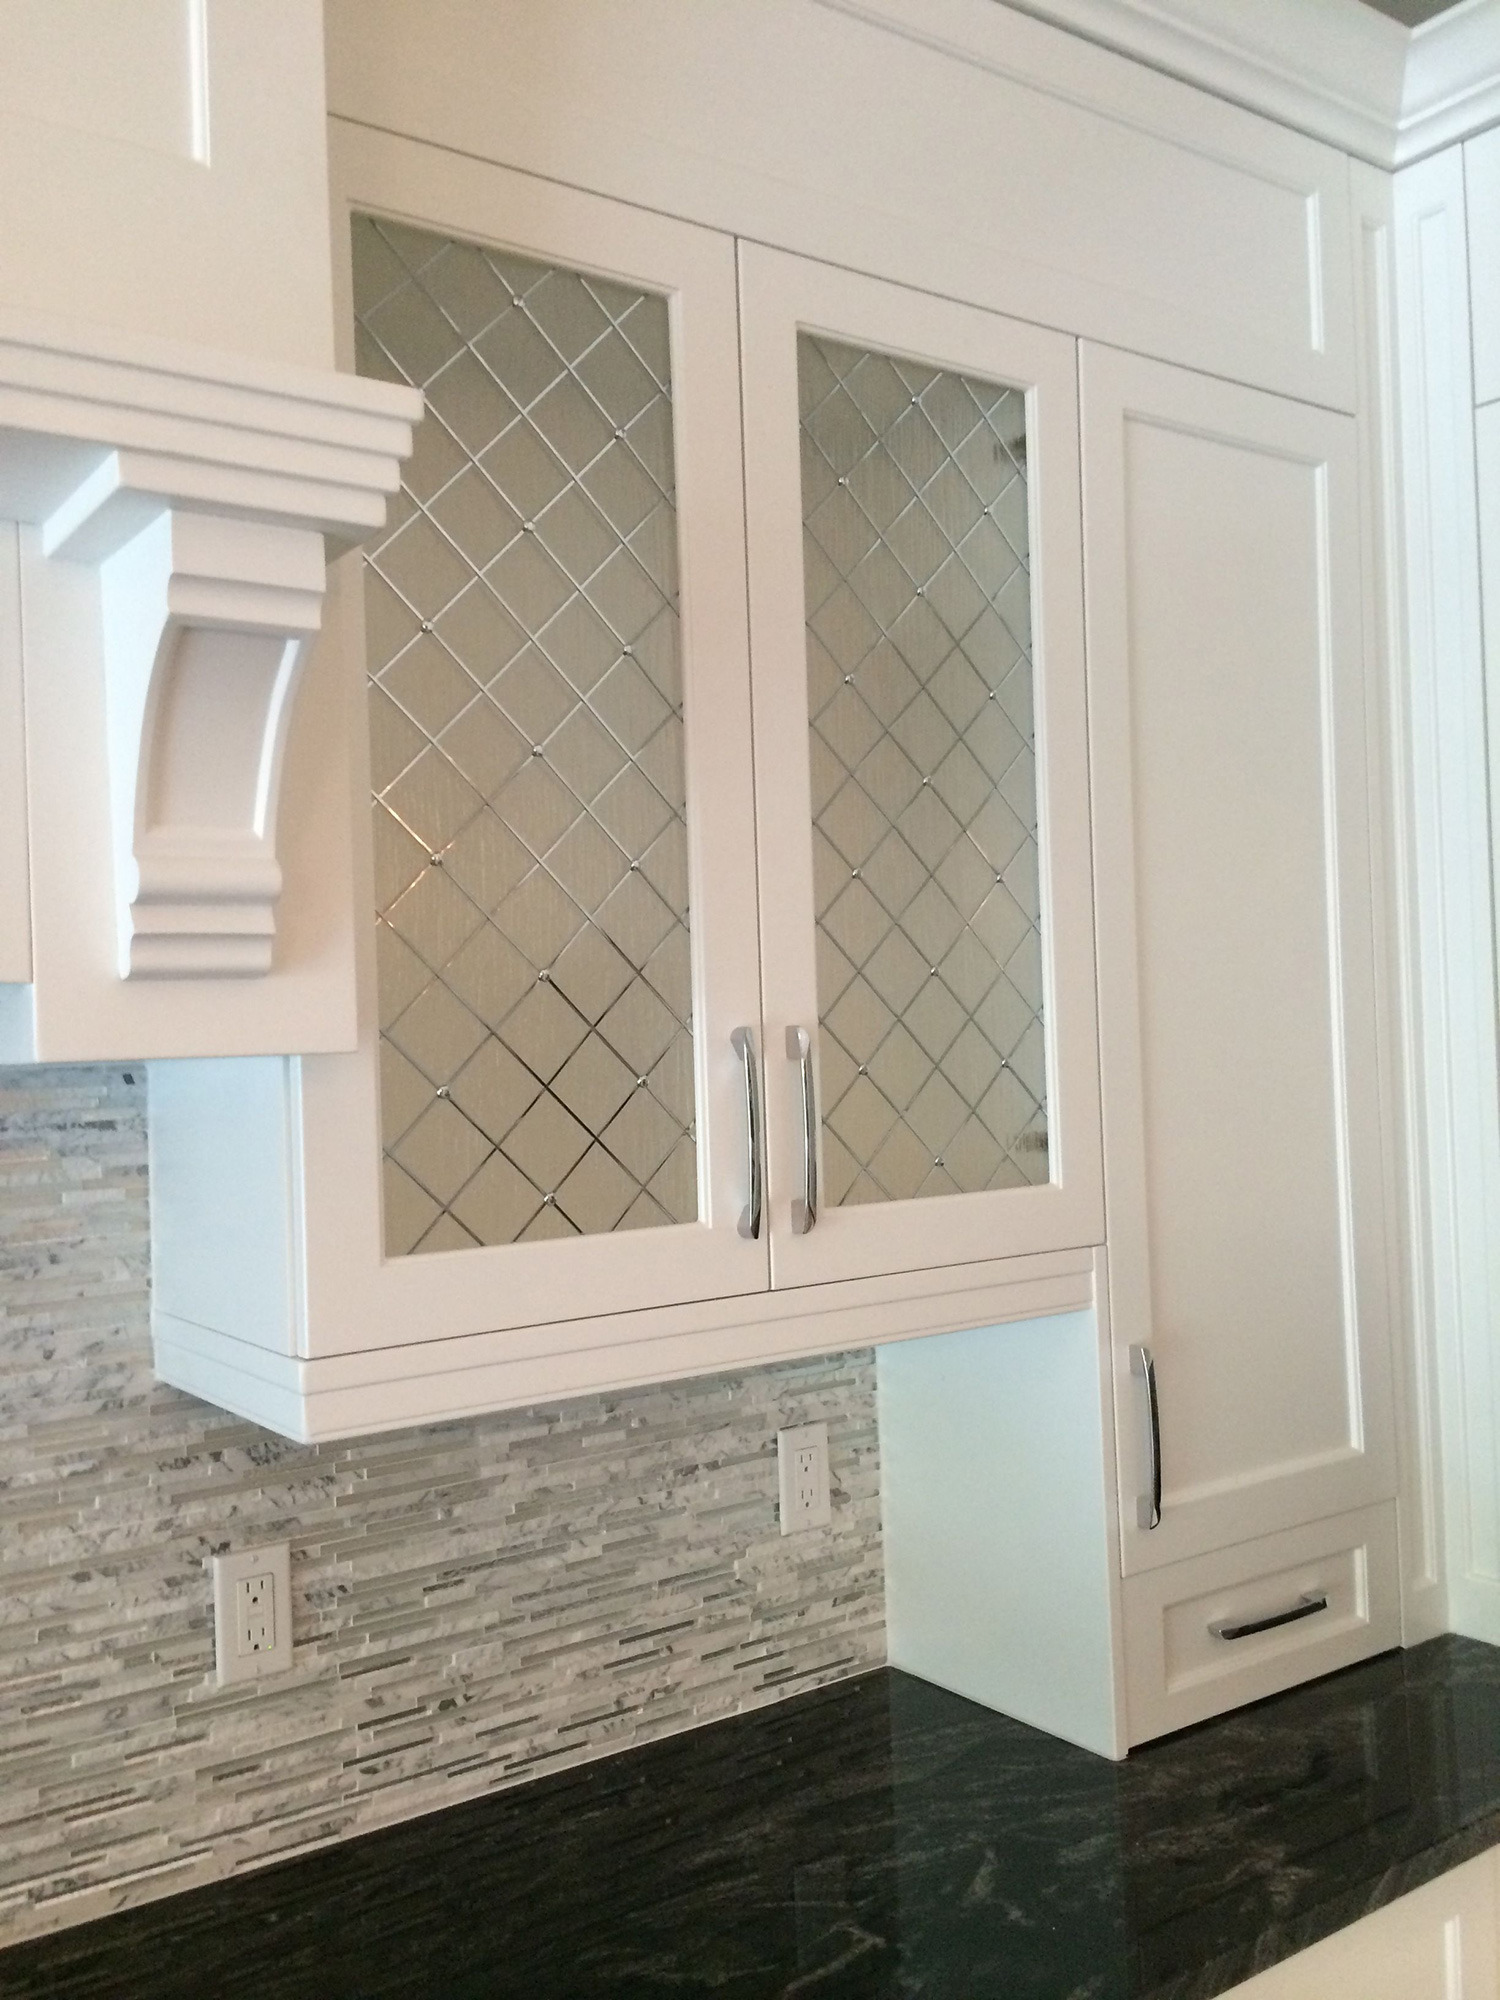 How to Put Glass In Cabinet Doors Luxury Glass Door Kitchen Cabinets Add Striking touch to the